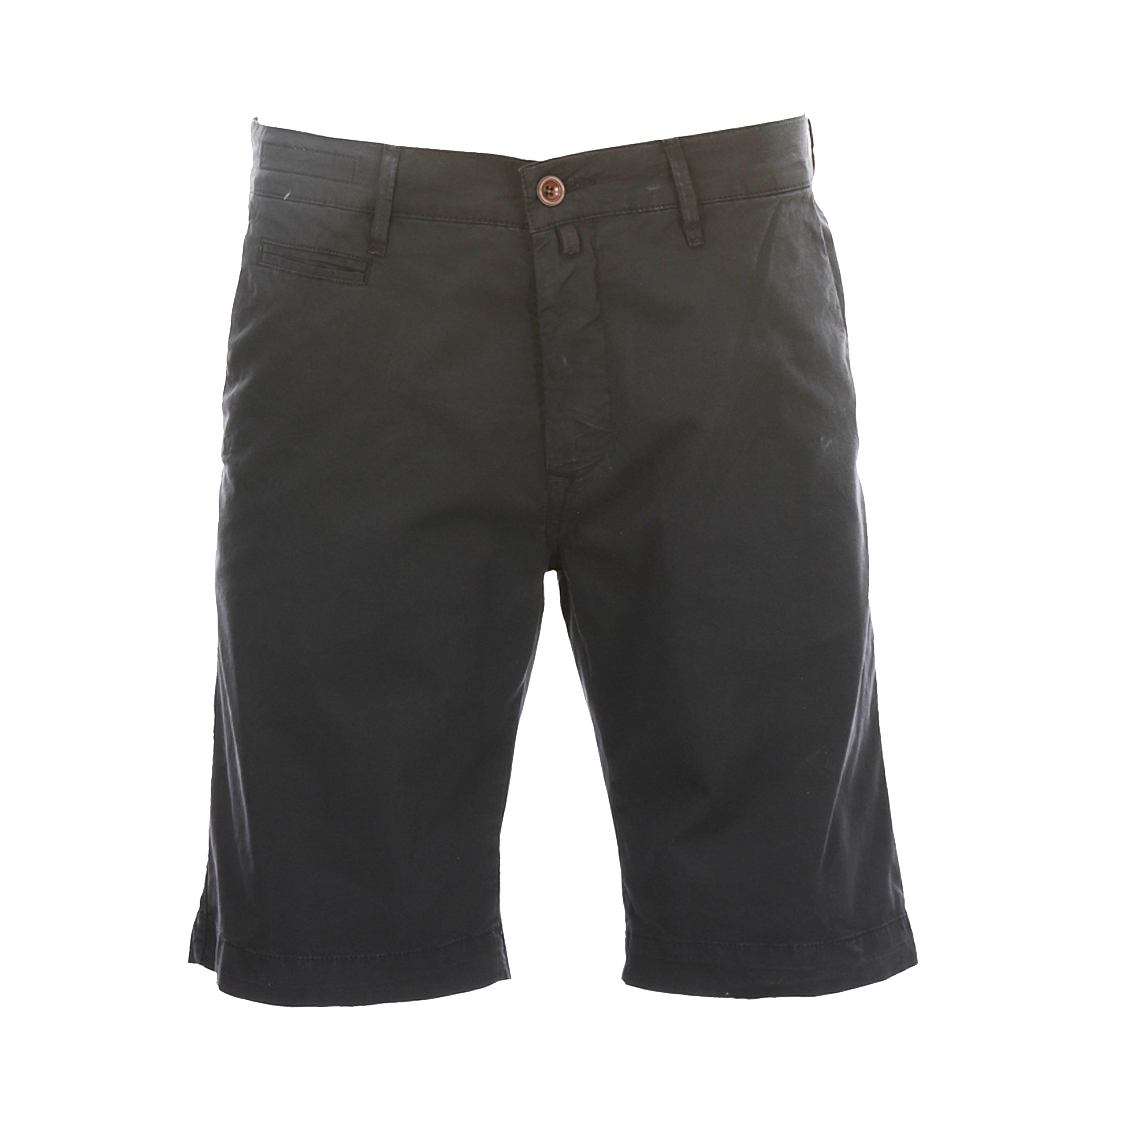 Short chino  lyon en coton stretch bleu marine